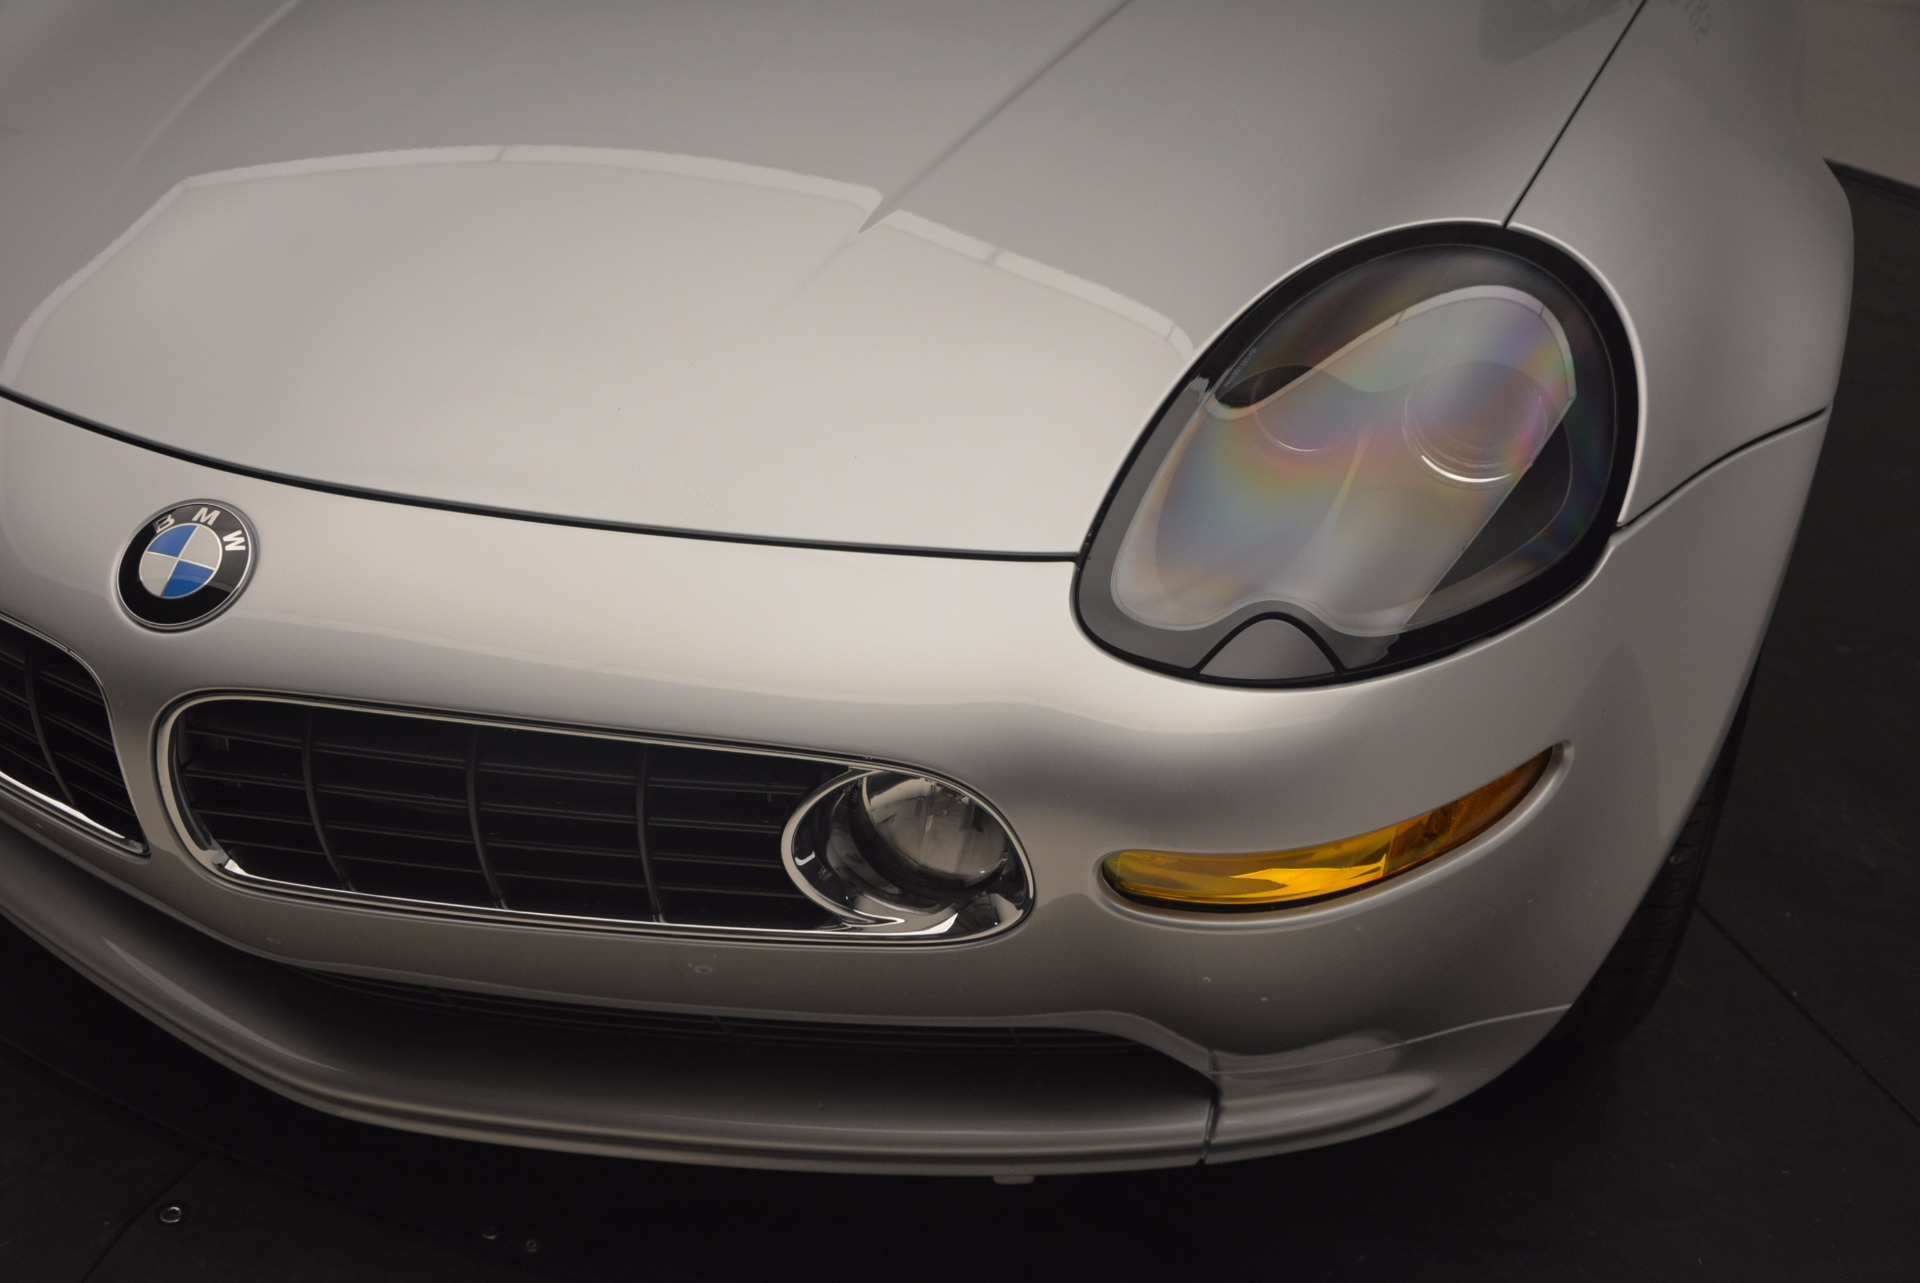 Used 2001 BMW Z8  For Sale In Greenwich, CT. Alfa Romeo of Greenwich, 7221 1293_p26